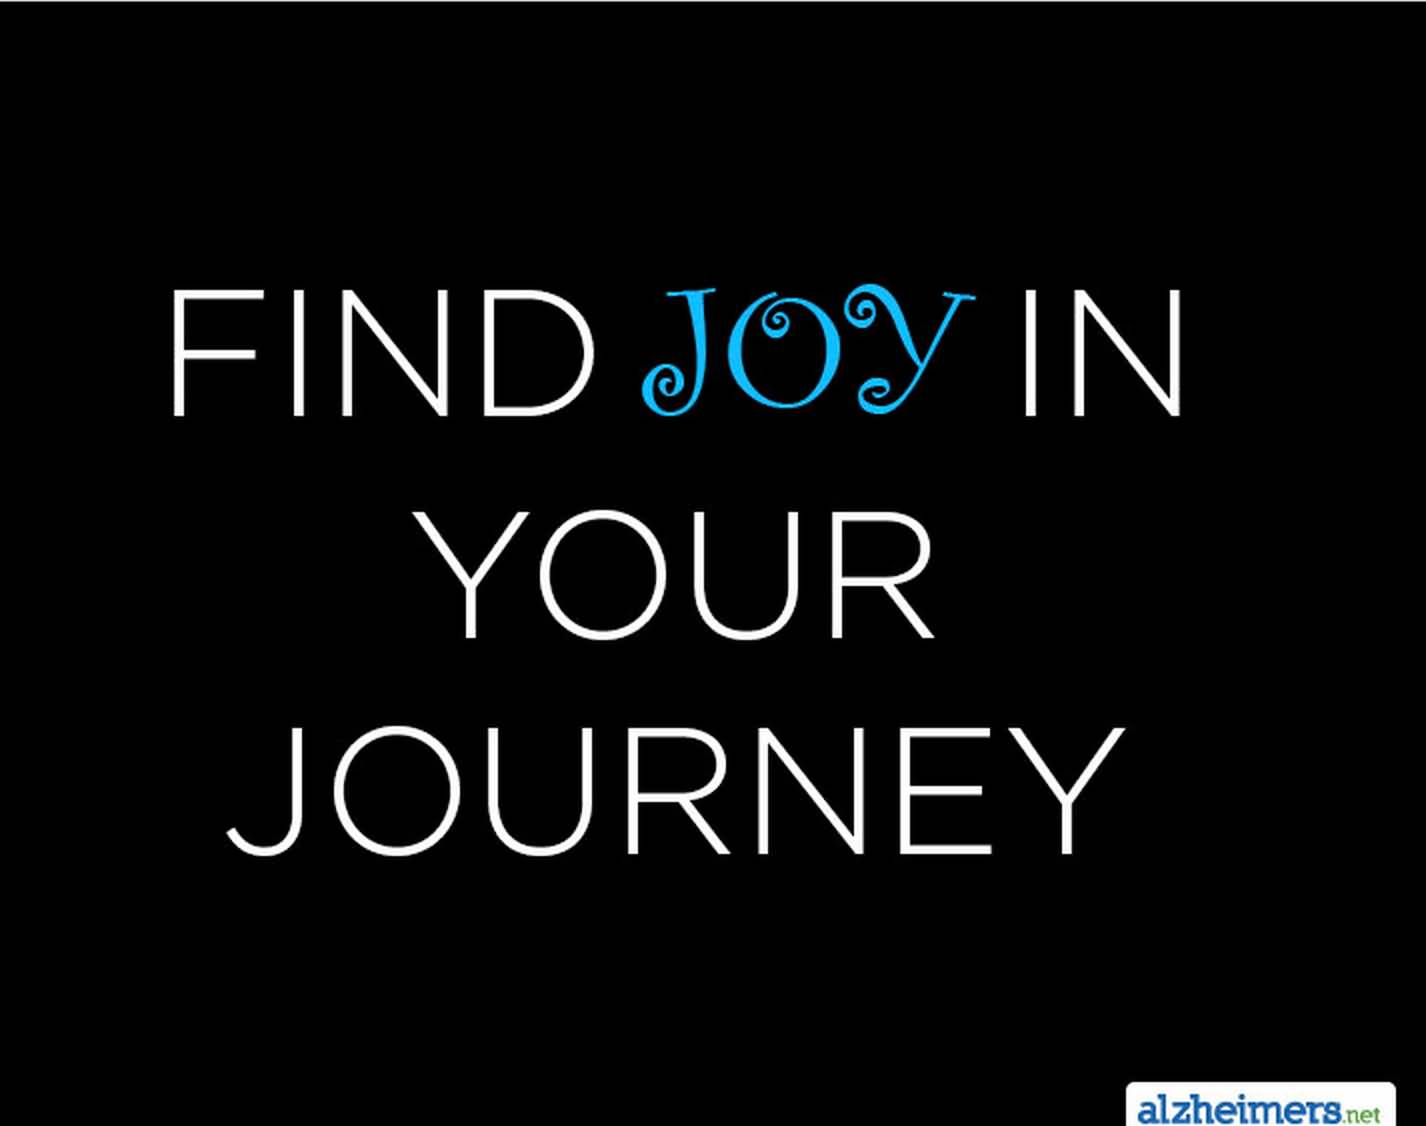 Life Journey Quotes Inspirational 62 Most Beautiful Journey Quotes And Sayings For Inspiration